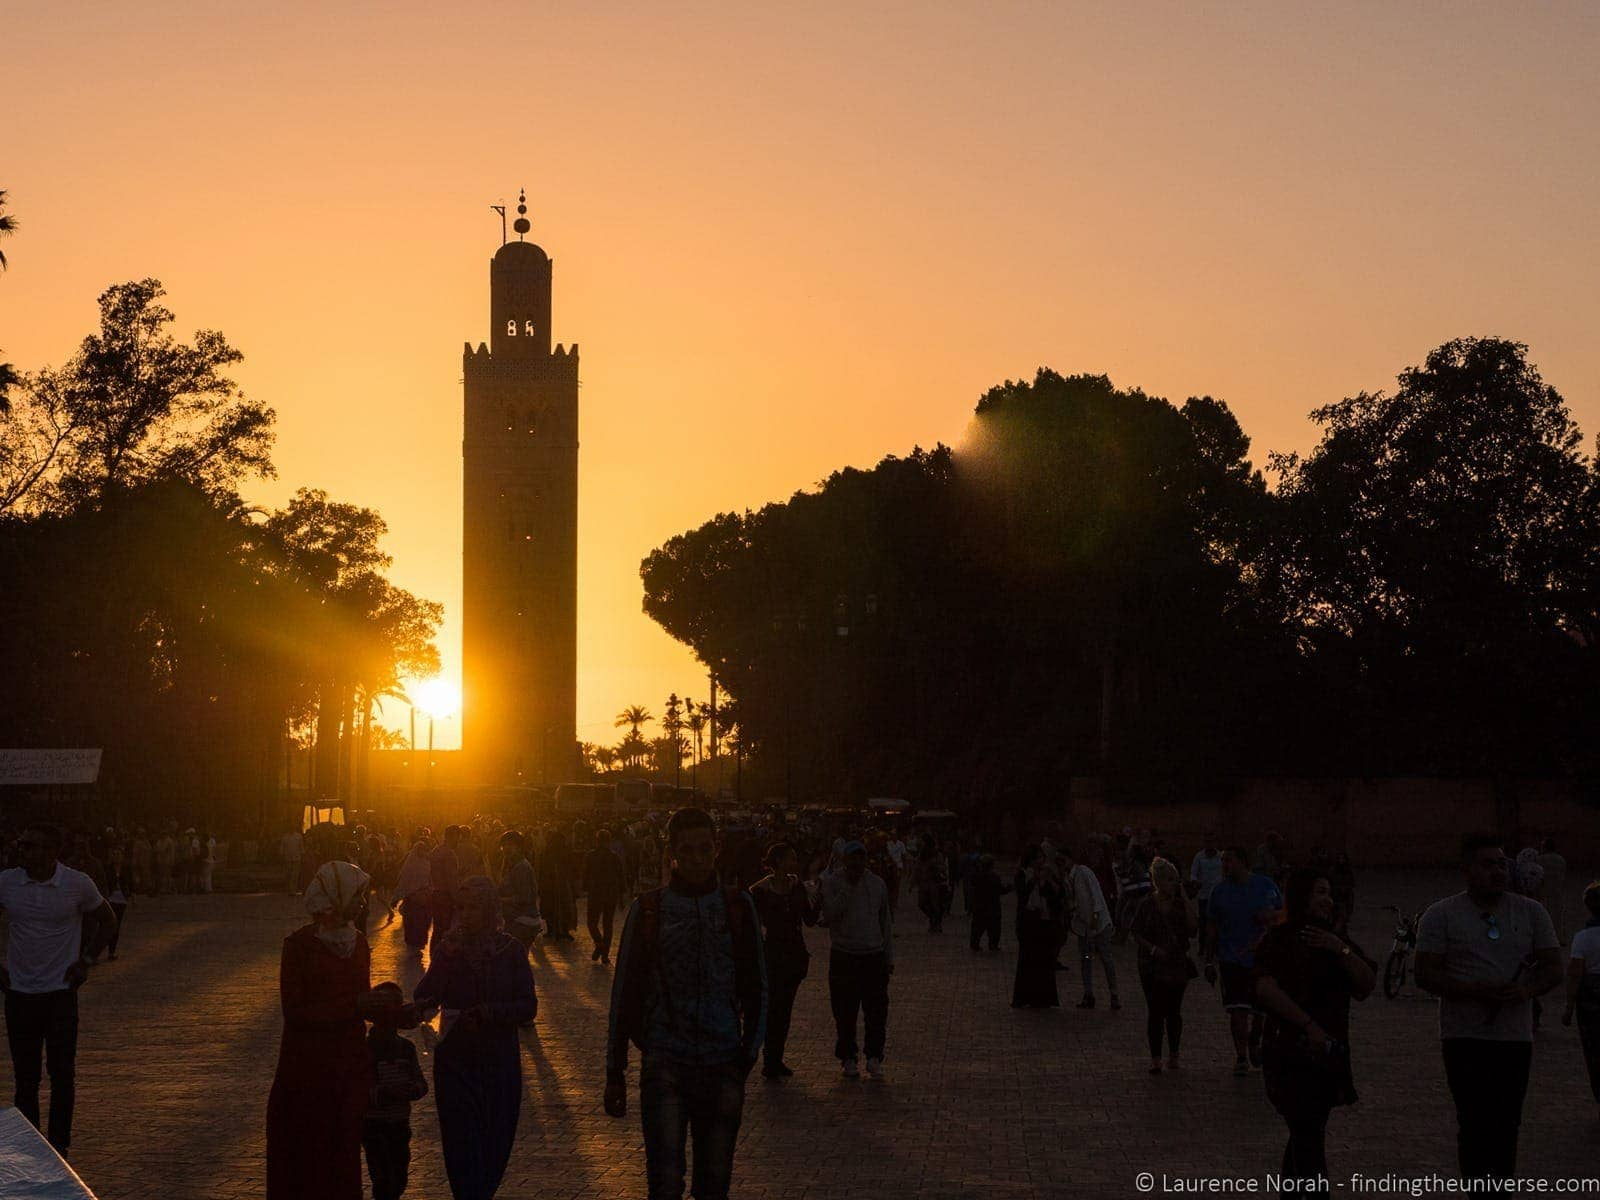 Sunset over Mosque Marrakech